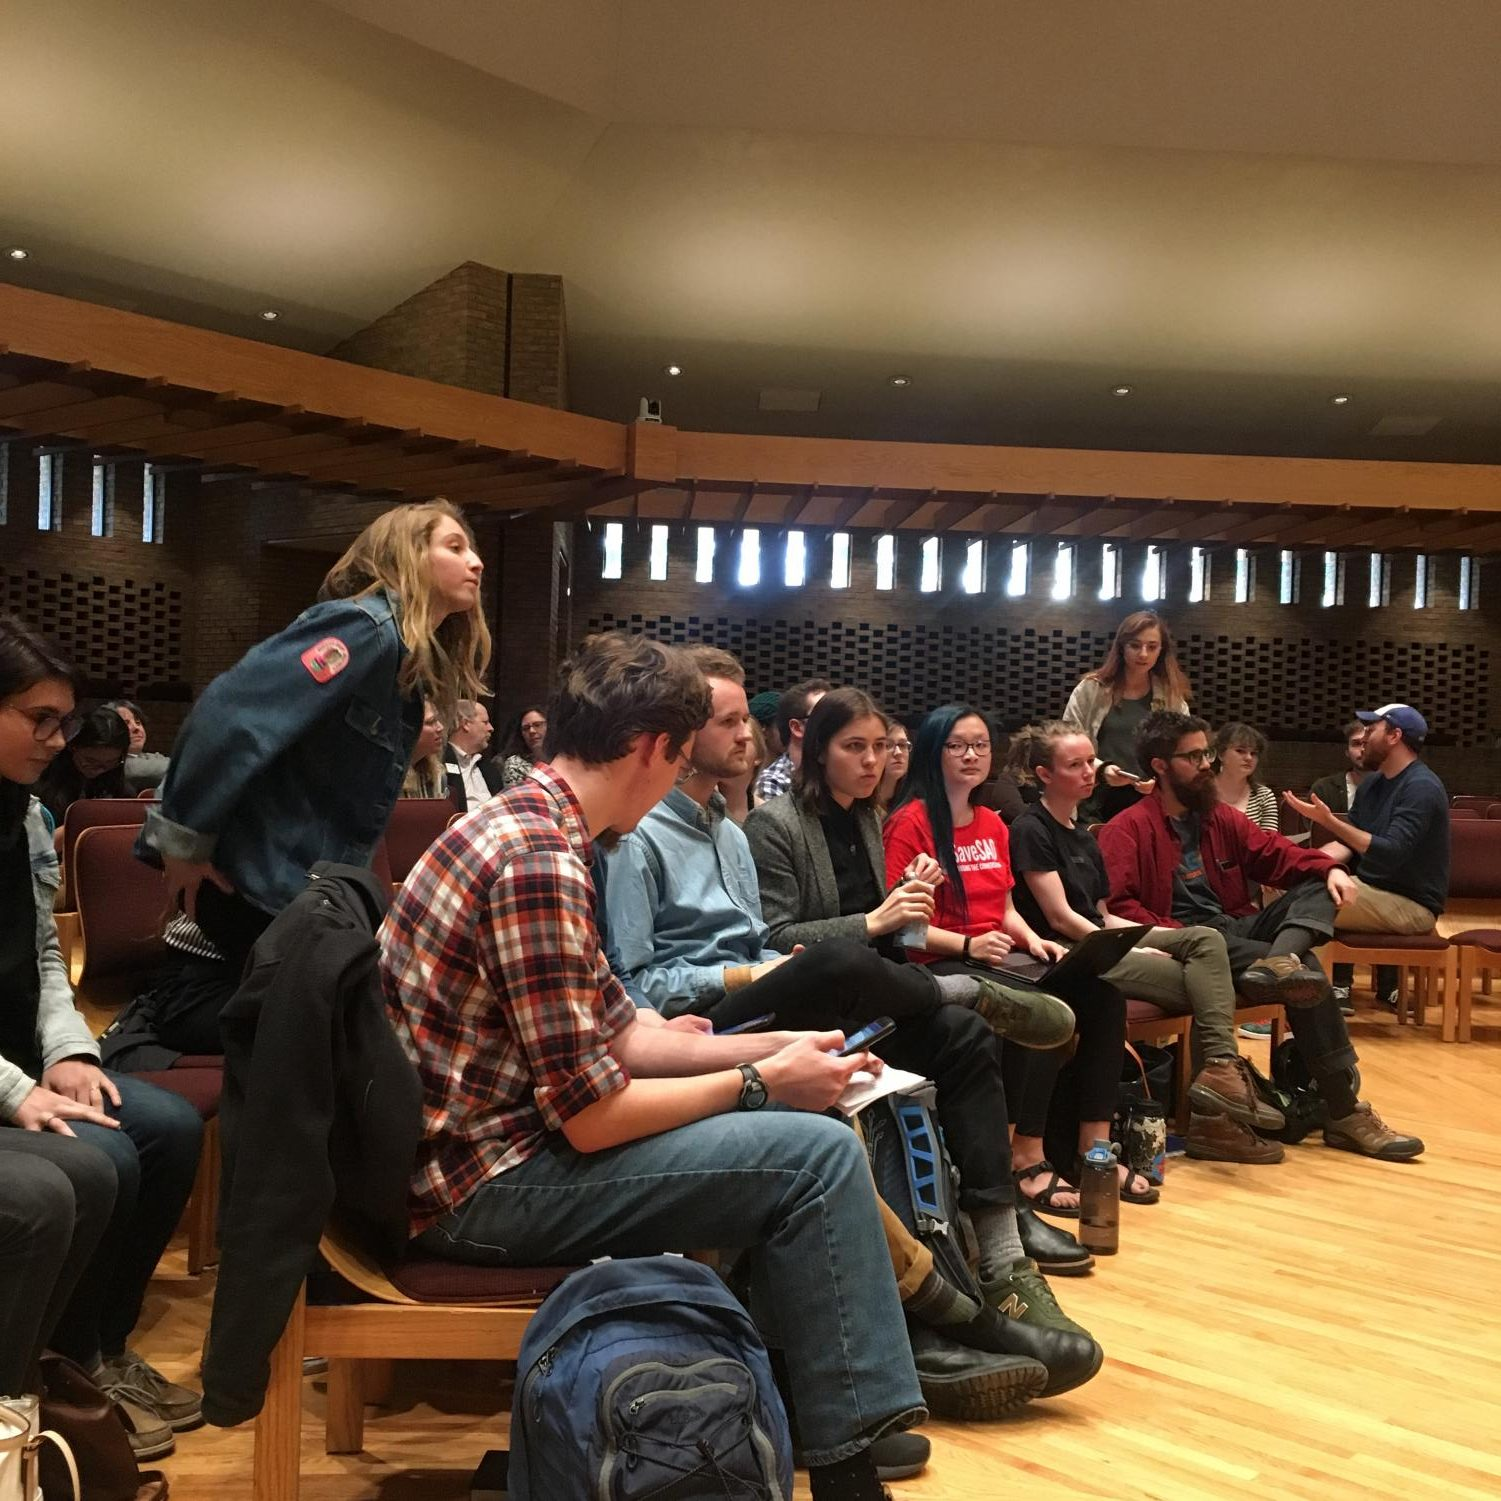 The students from the #SaveSAO group sat in the front row of the Chapel. They raised many of the questions throughout the meeting.